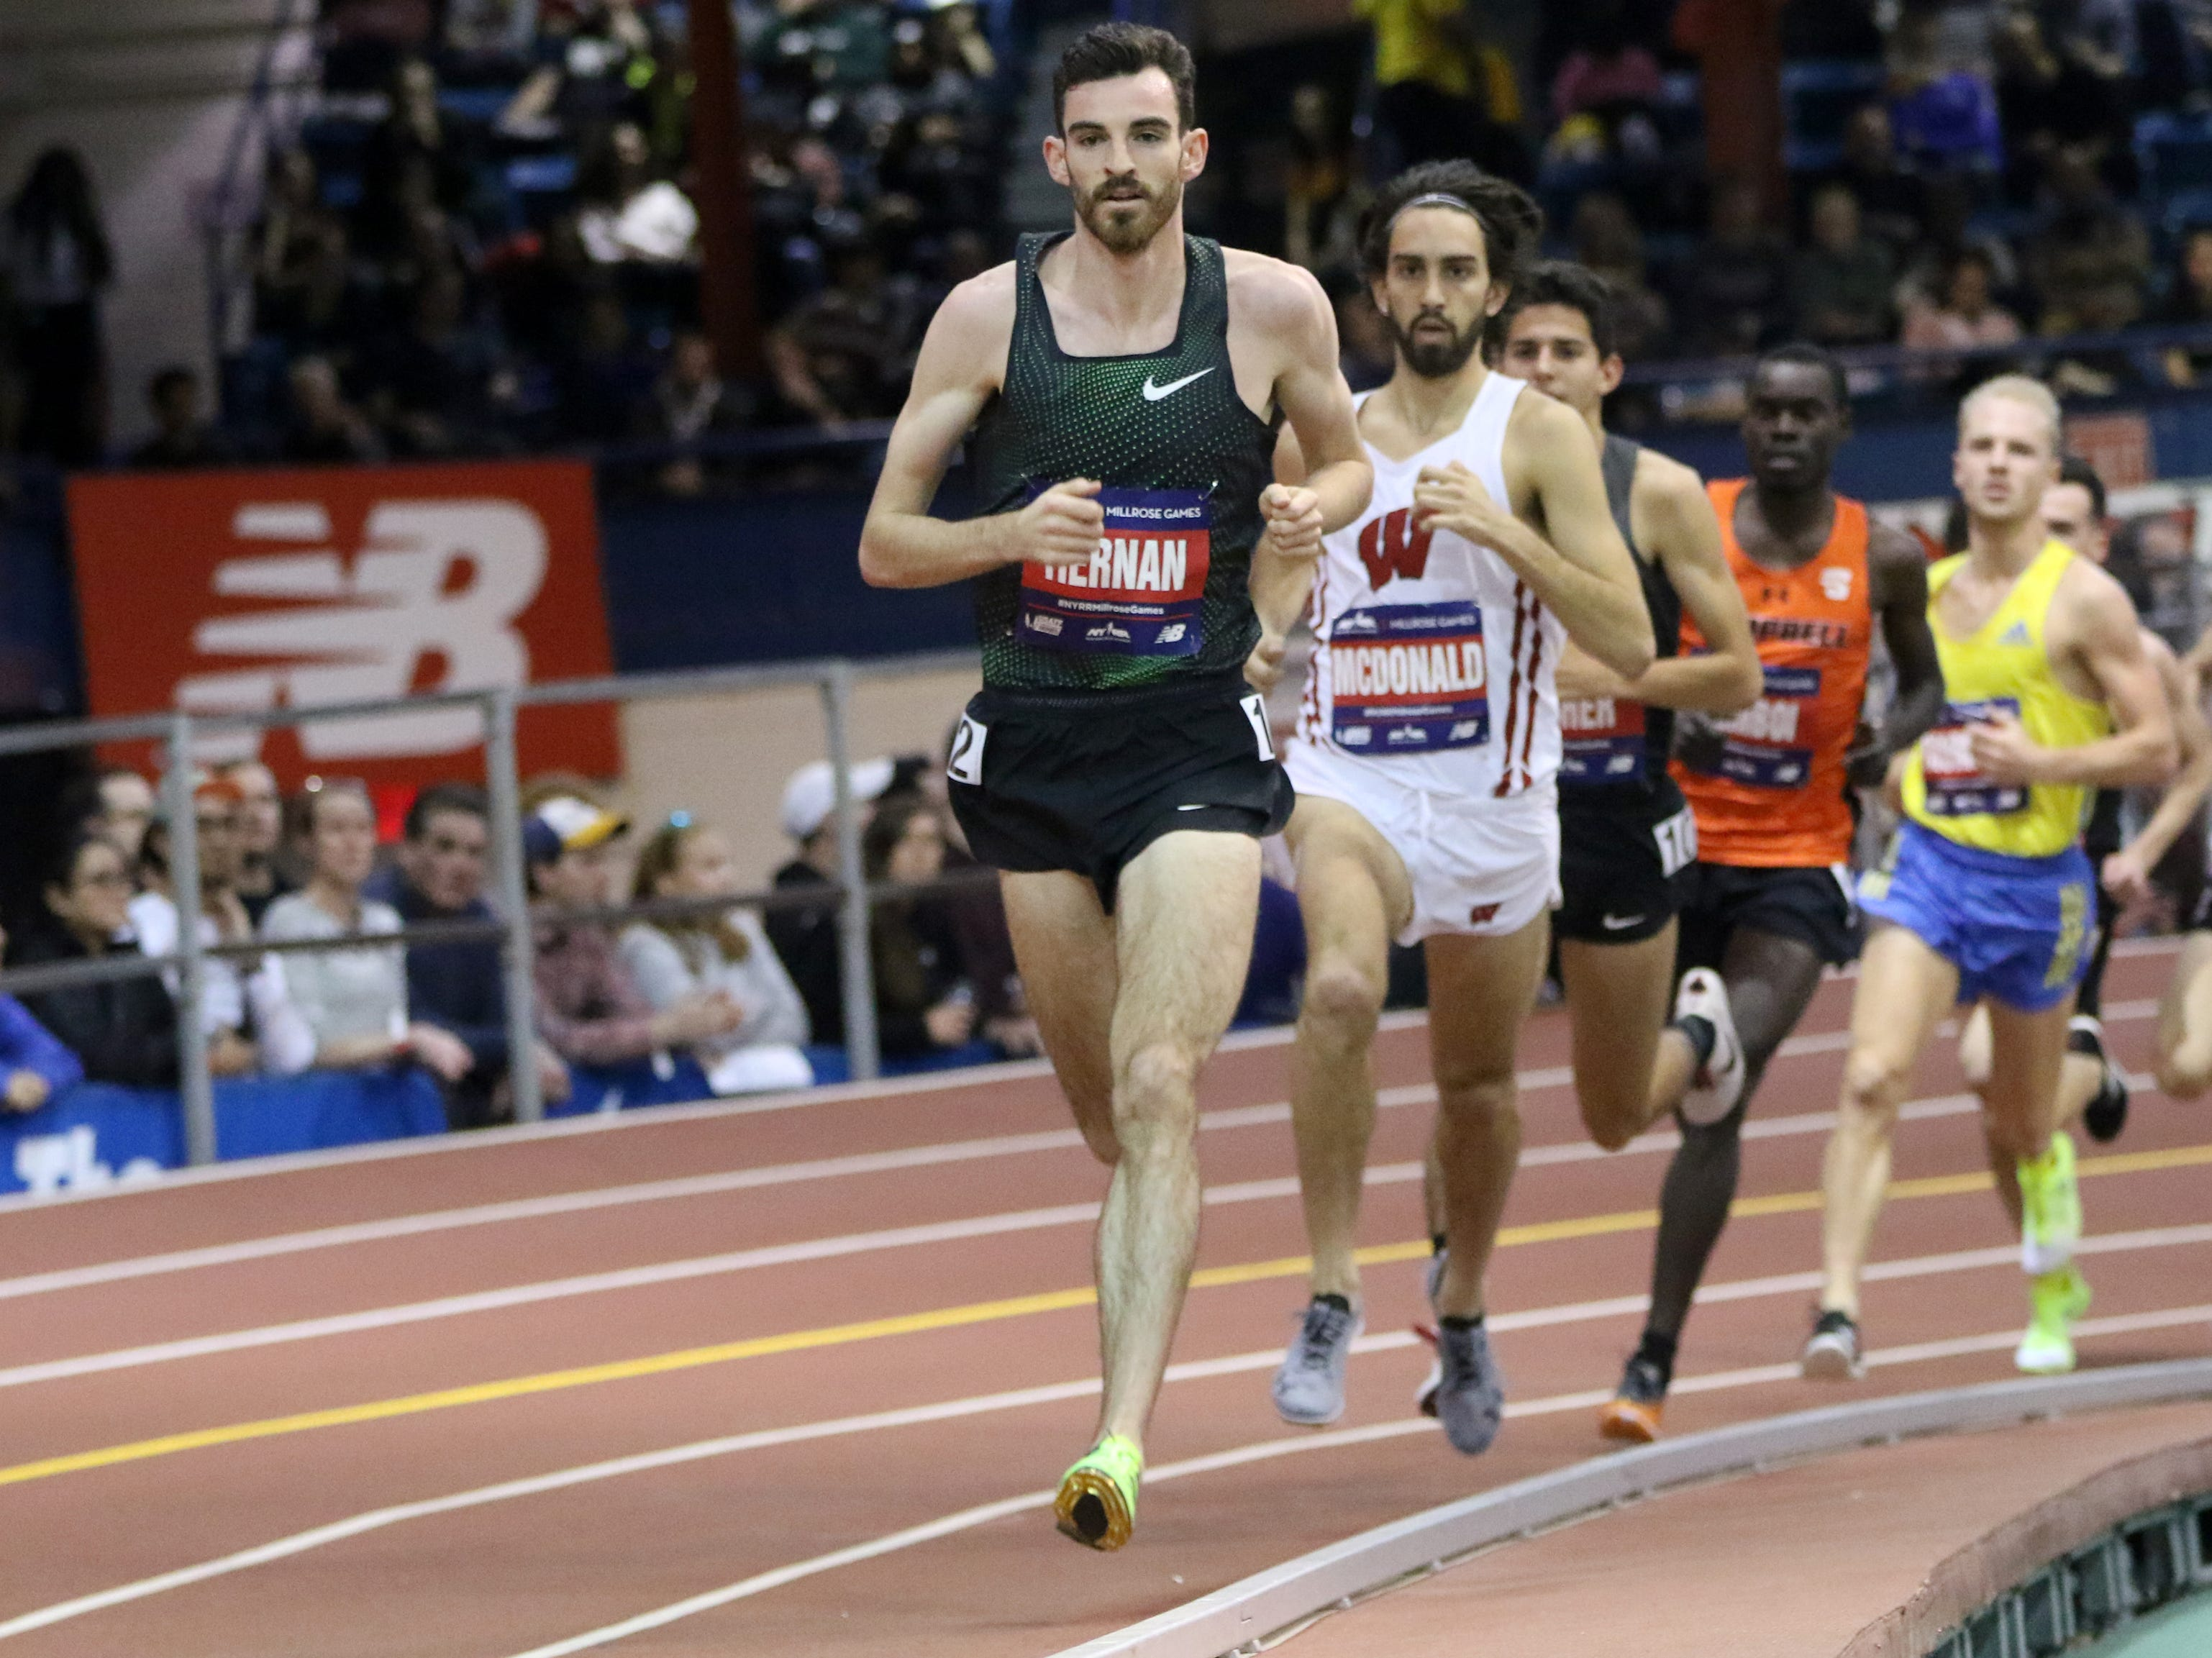 Pat Tiernan is shown during the 3000 meter race. Tiernan came in fifth place with a time of 7:48.  Saturday, February 9, 2019